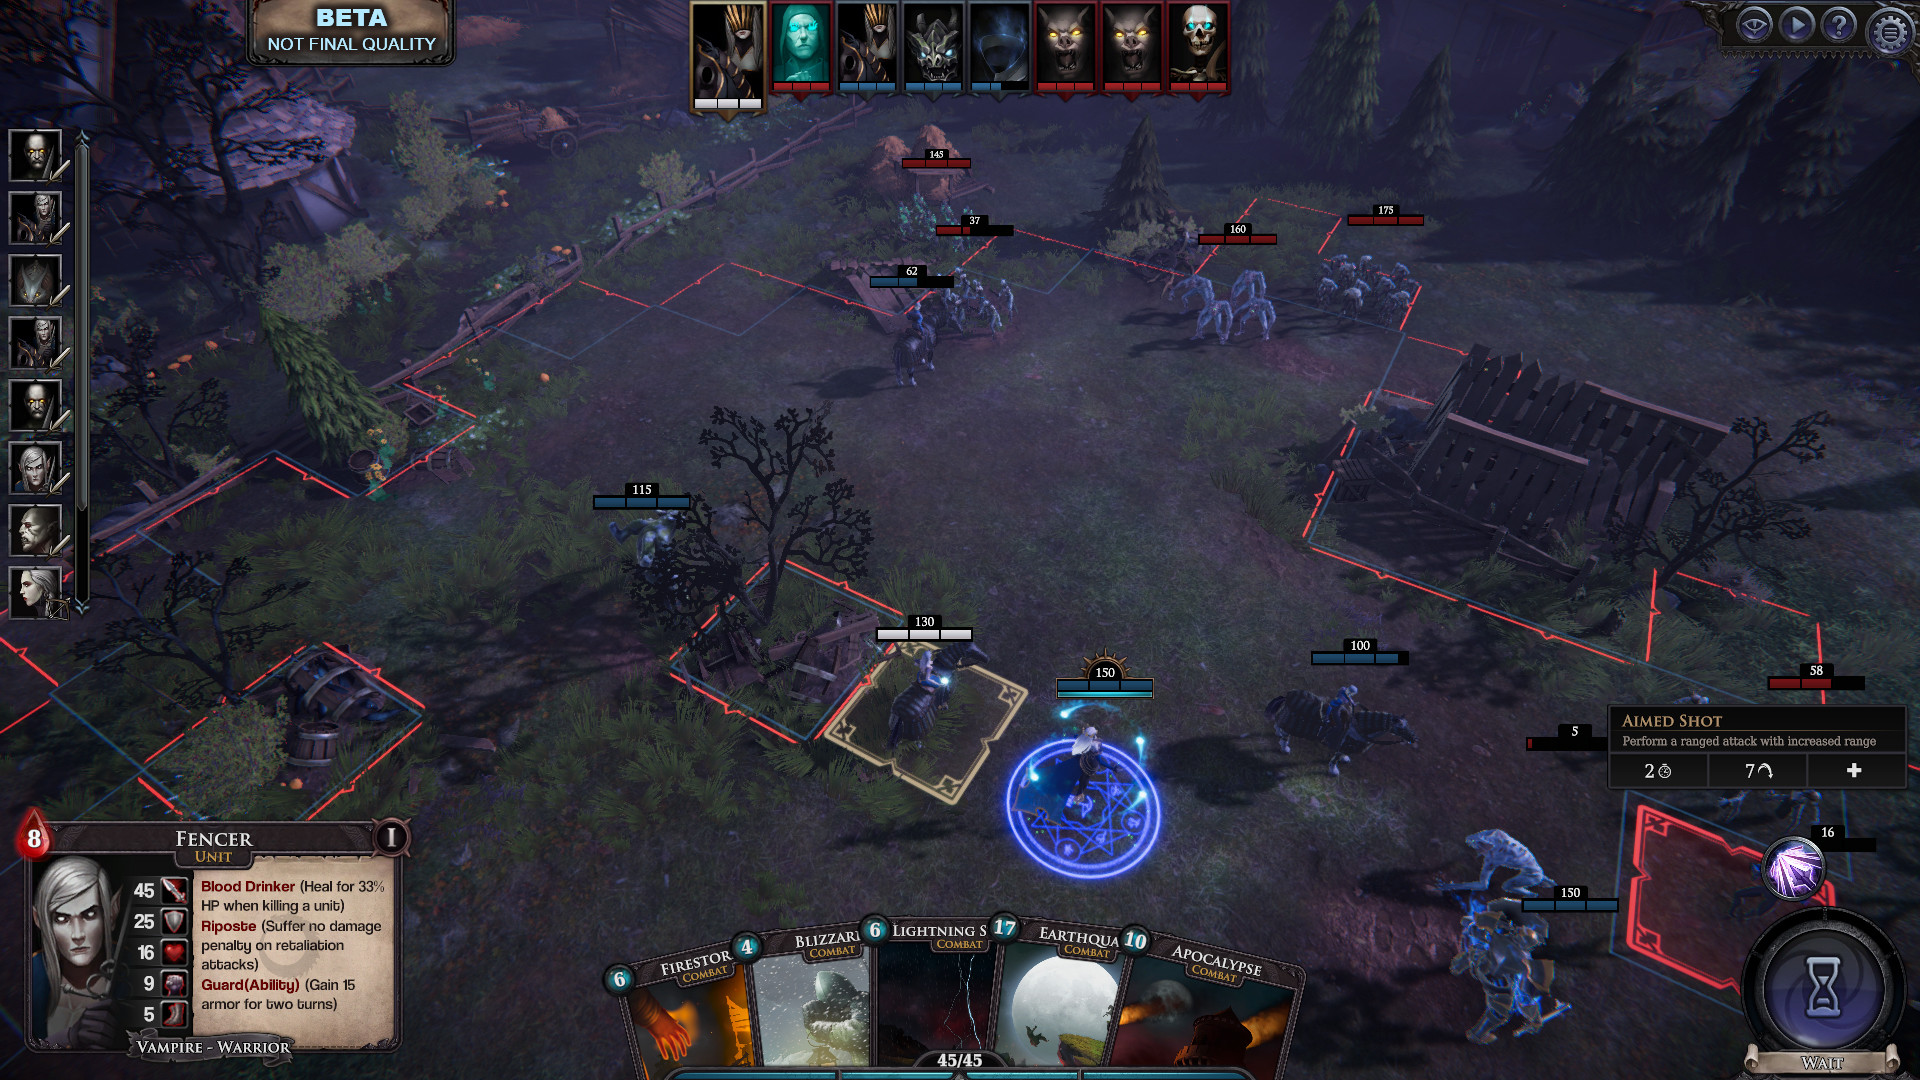 screenshot3 for Immortal Realms: Vampire Wars showing a battle scene